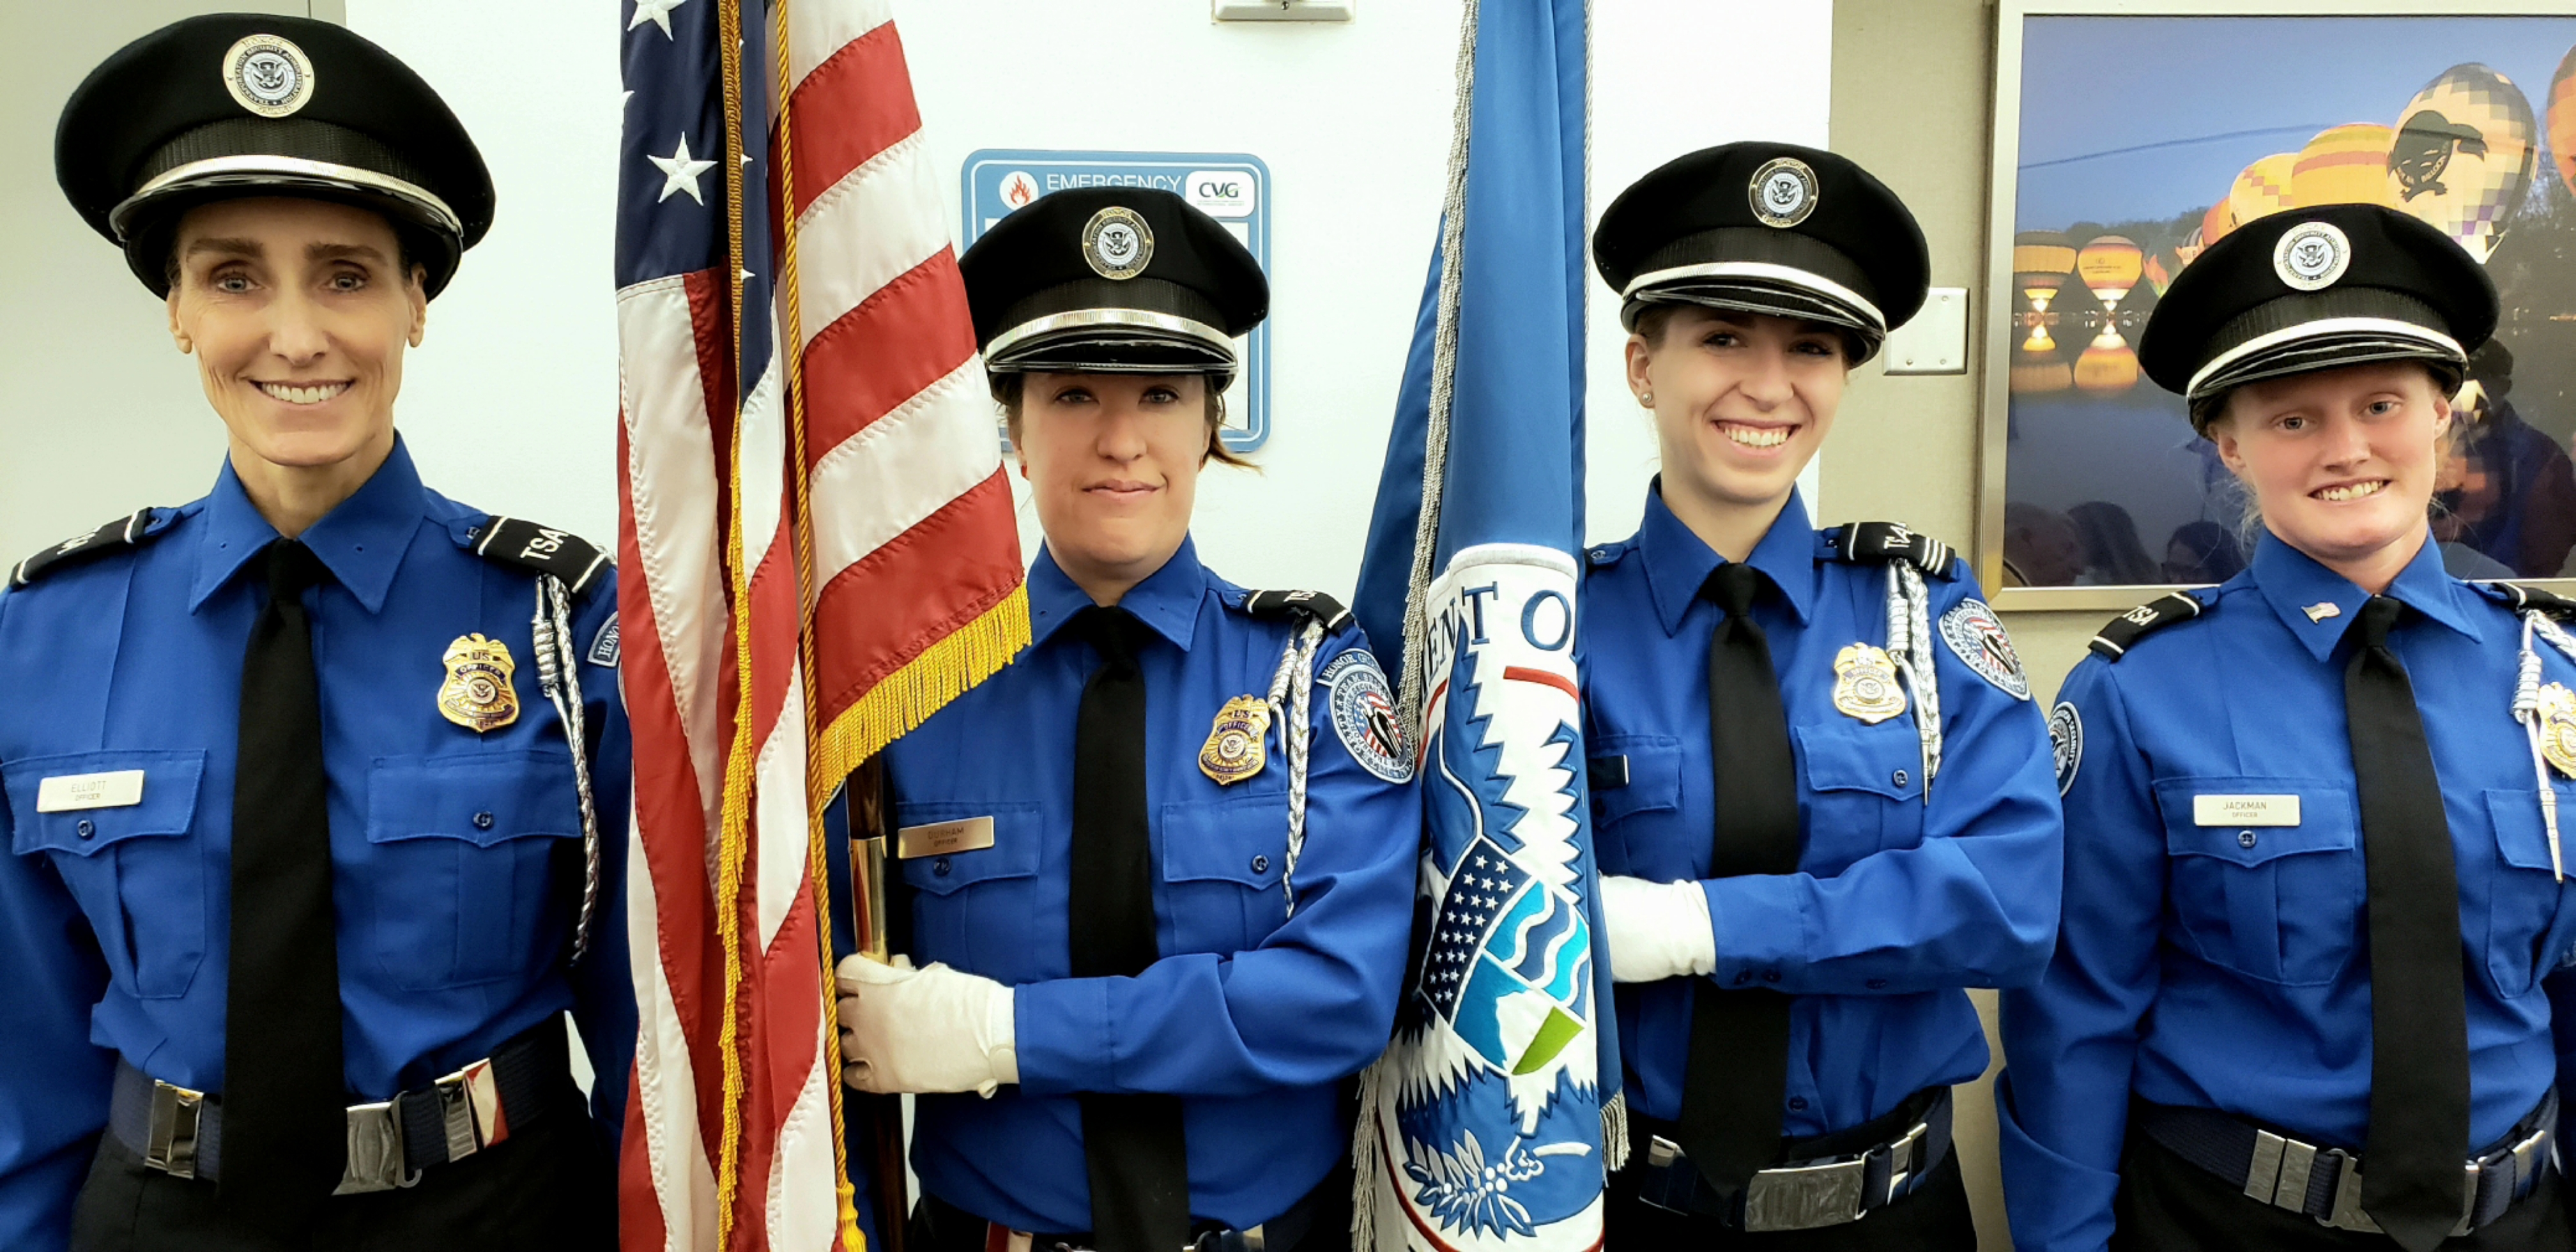 TSA Color Guard